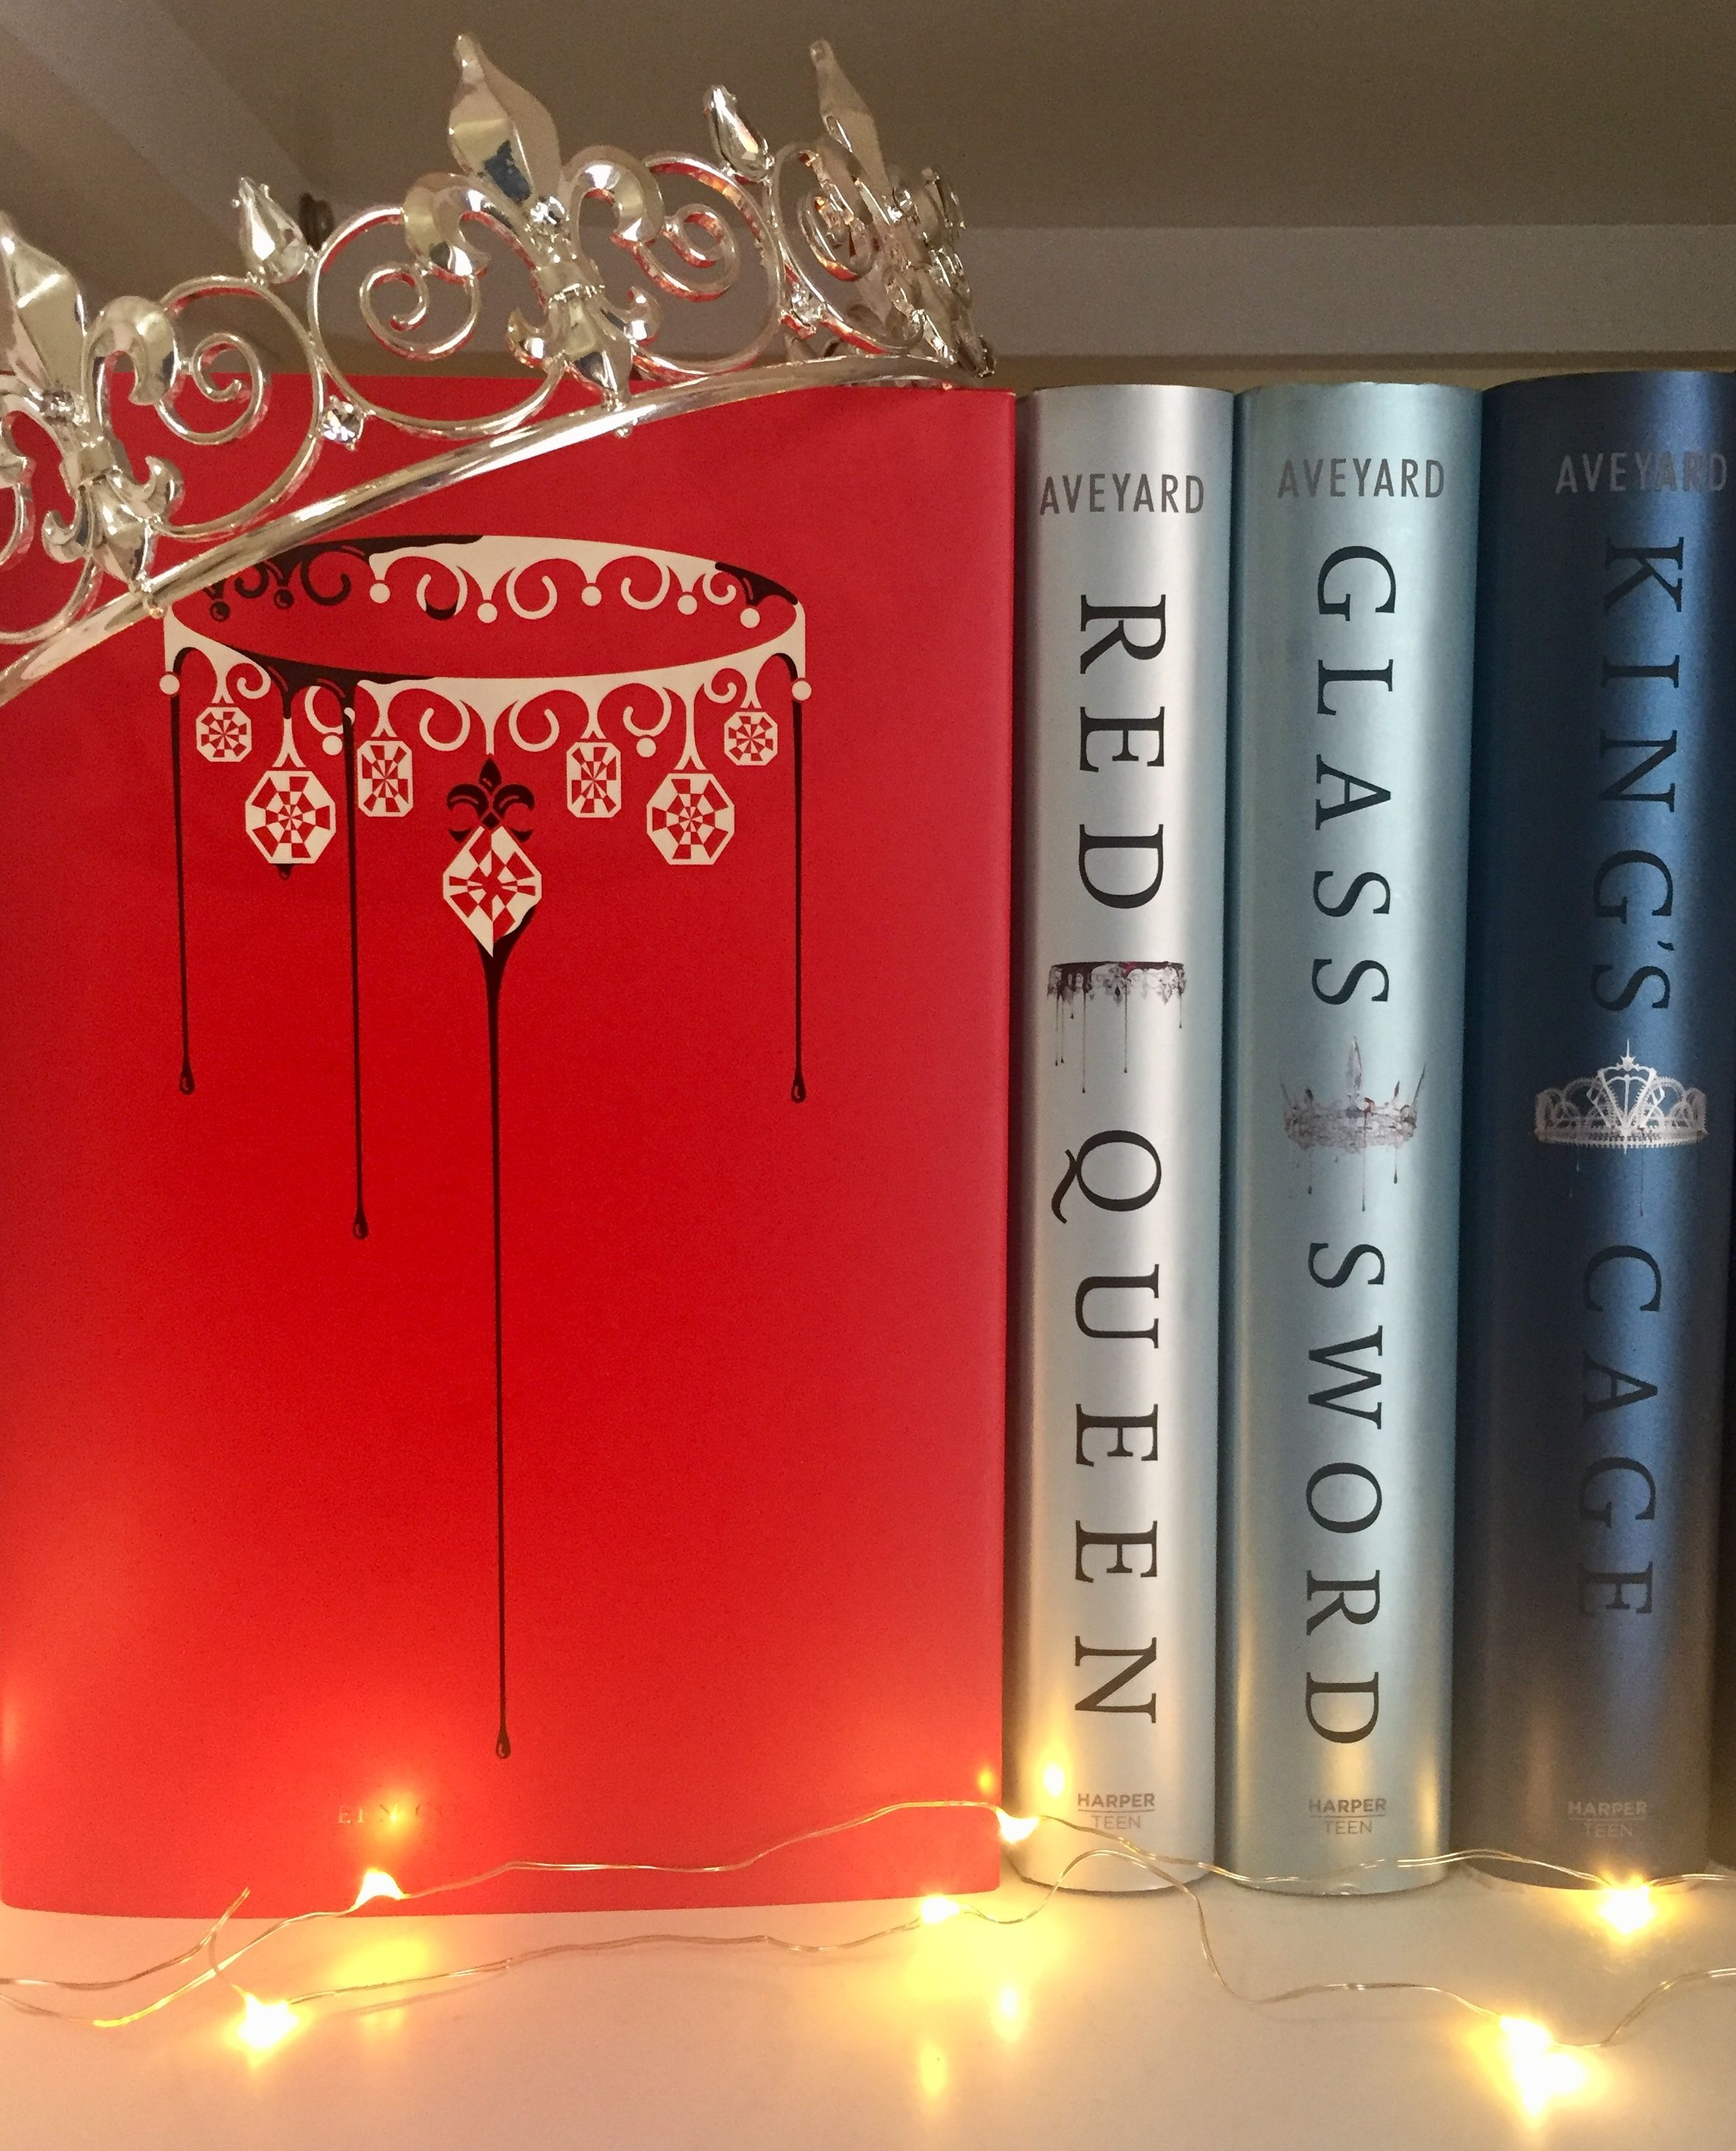 The Red Queen Series By Victoria Aveyard Set Up On My Shelf